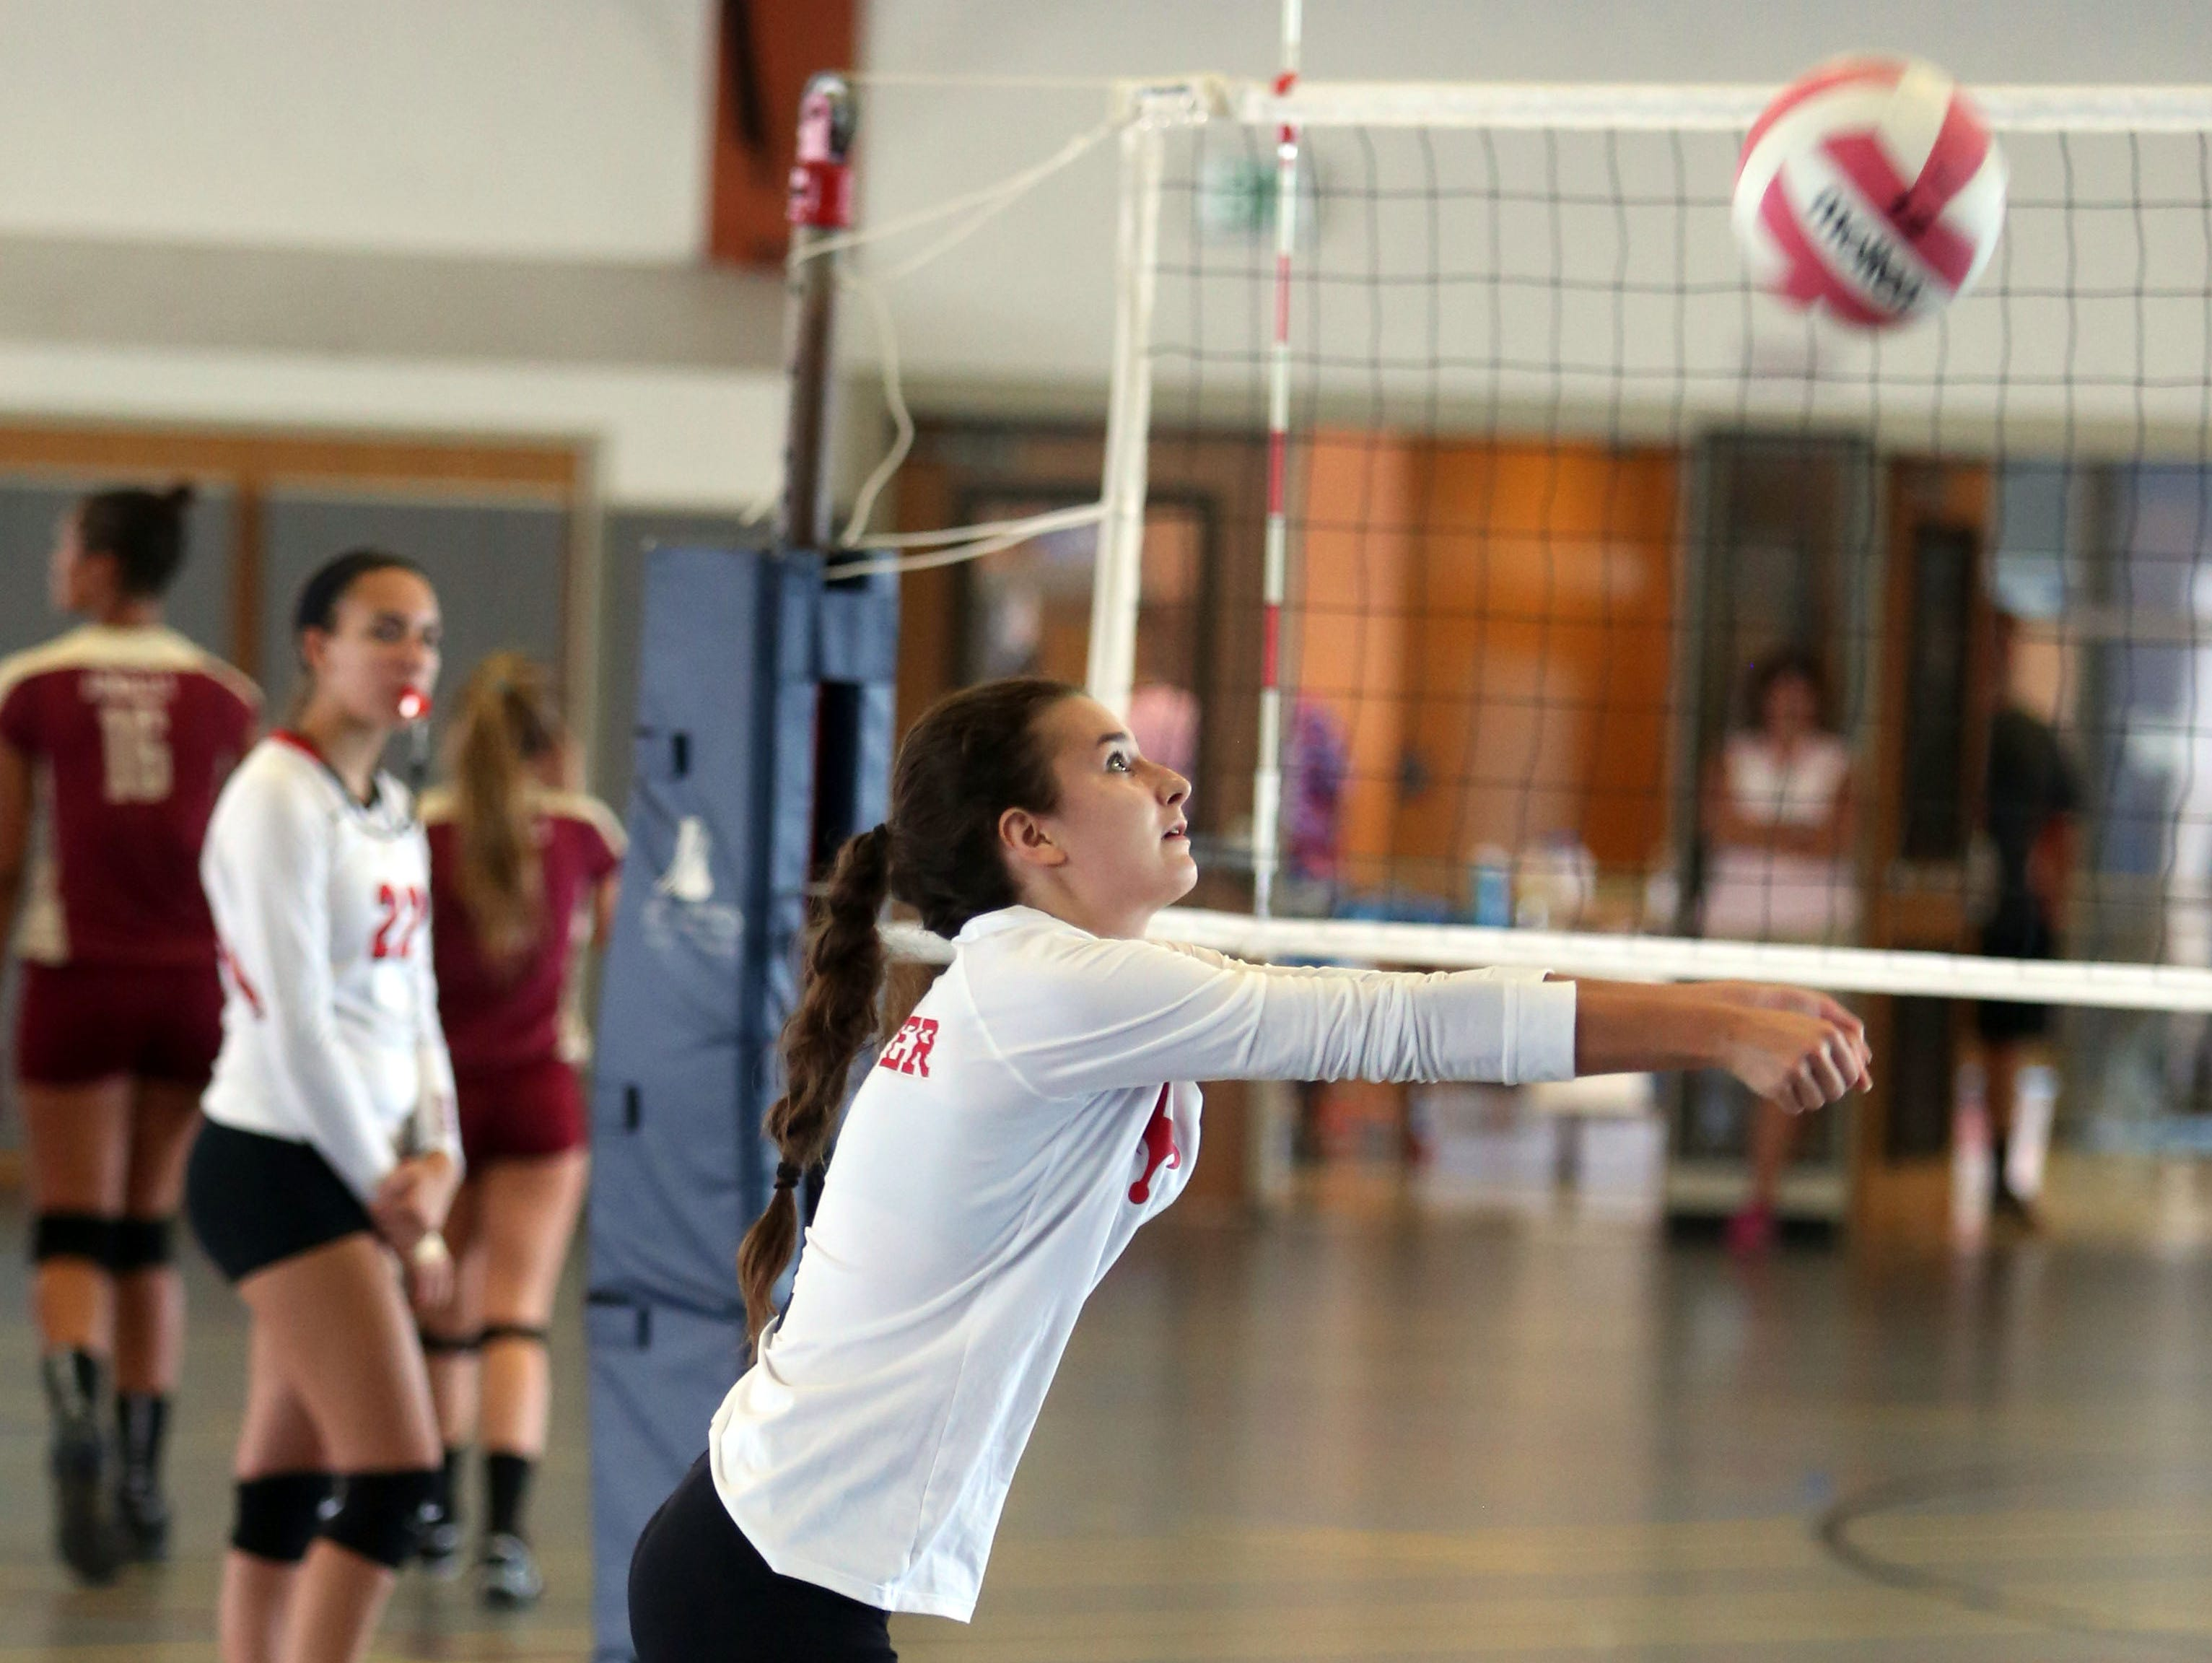 Arielle Putter with the Fox Lane High School Volleyball team, returns a shot against Millbrook during the Breast Cancer Awareness tournament at Hendrick Hudson High School in Montrose, Sept, 10, 2016.